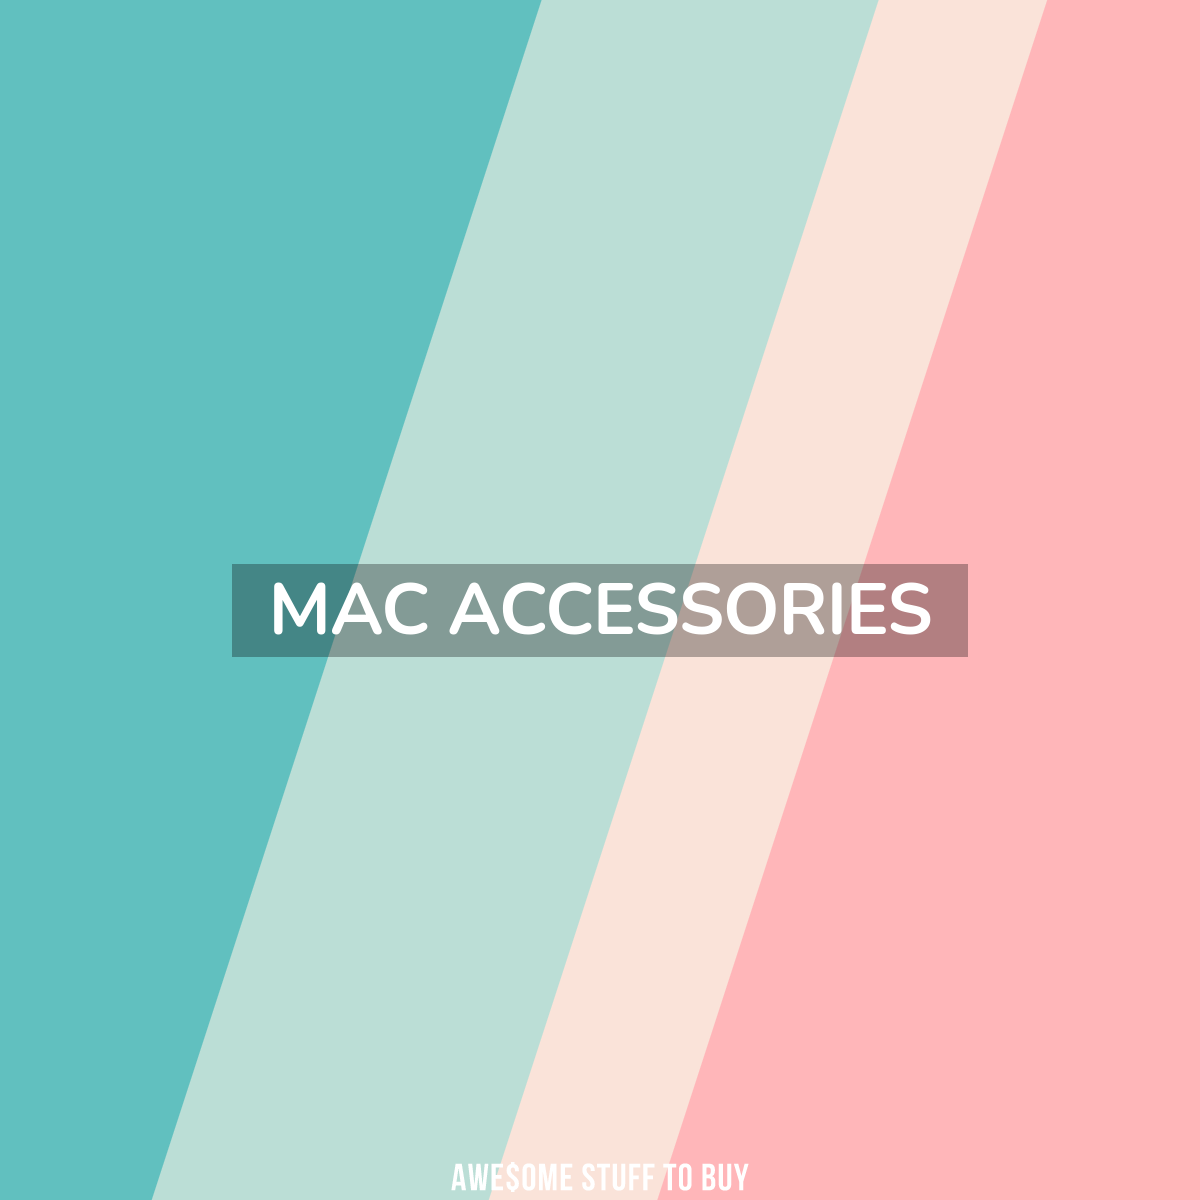 Mac Accessories // Awesome Stuff to Buy